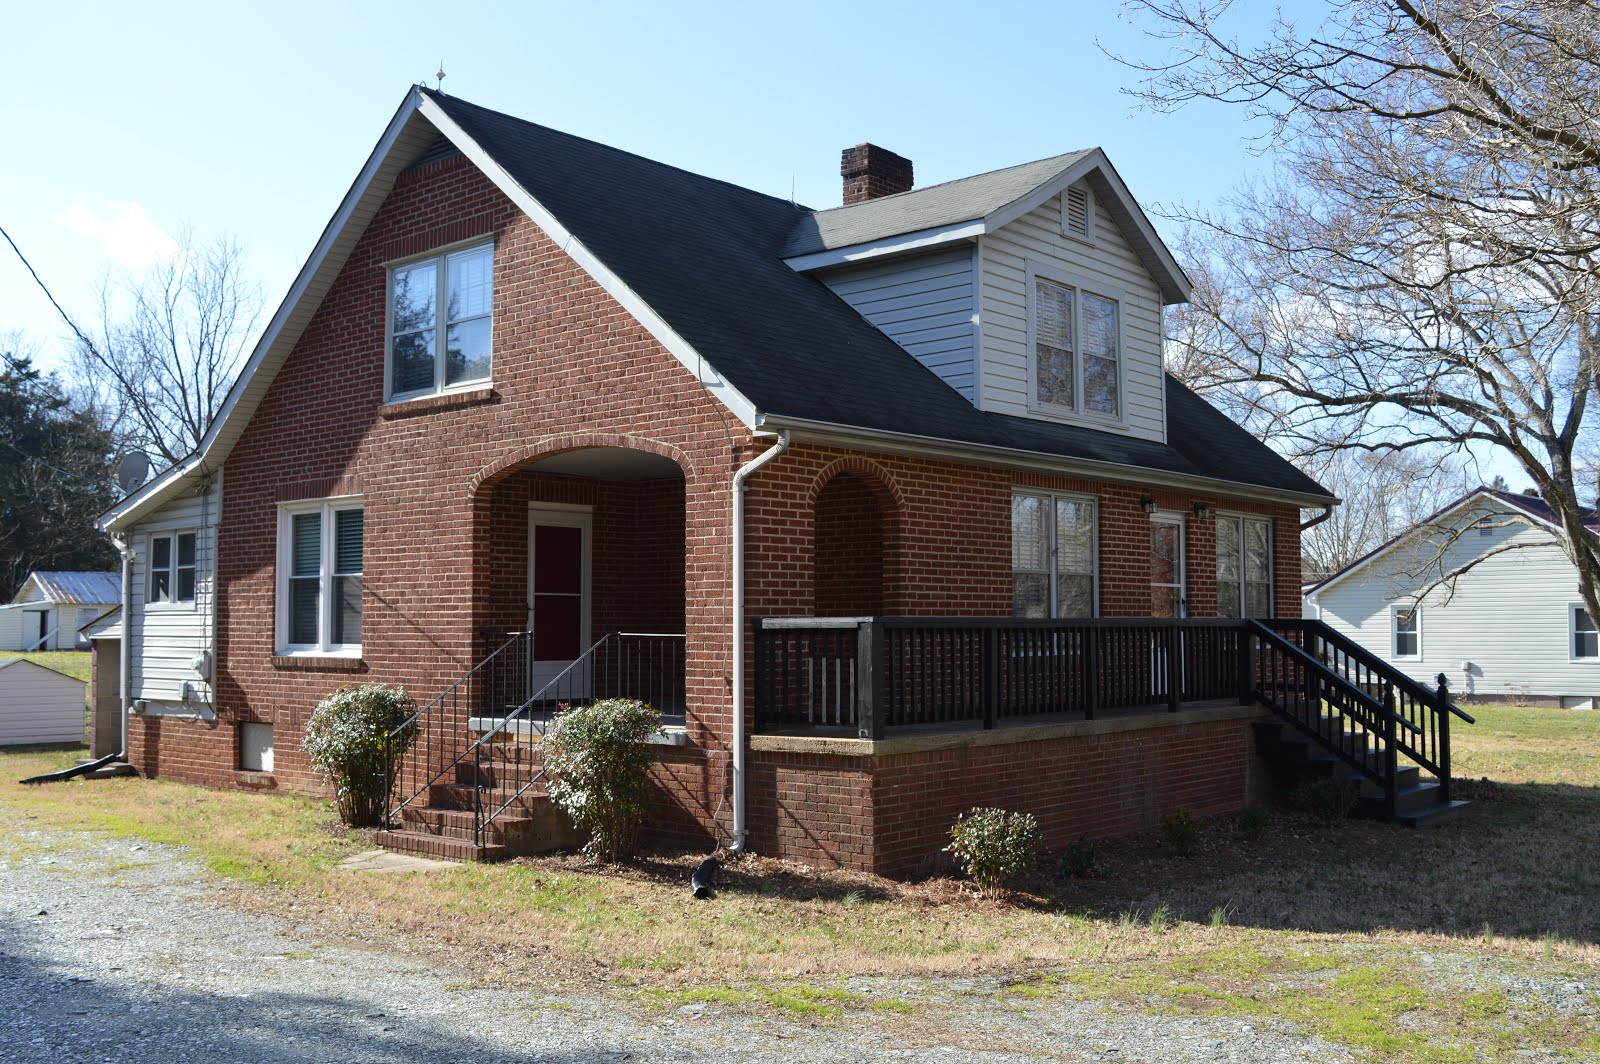 3435 Long Ferry Road, Salisbury NC 28146 ~ circa 1945 ~ $114,900